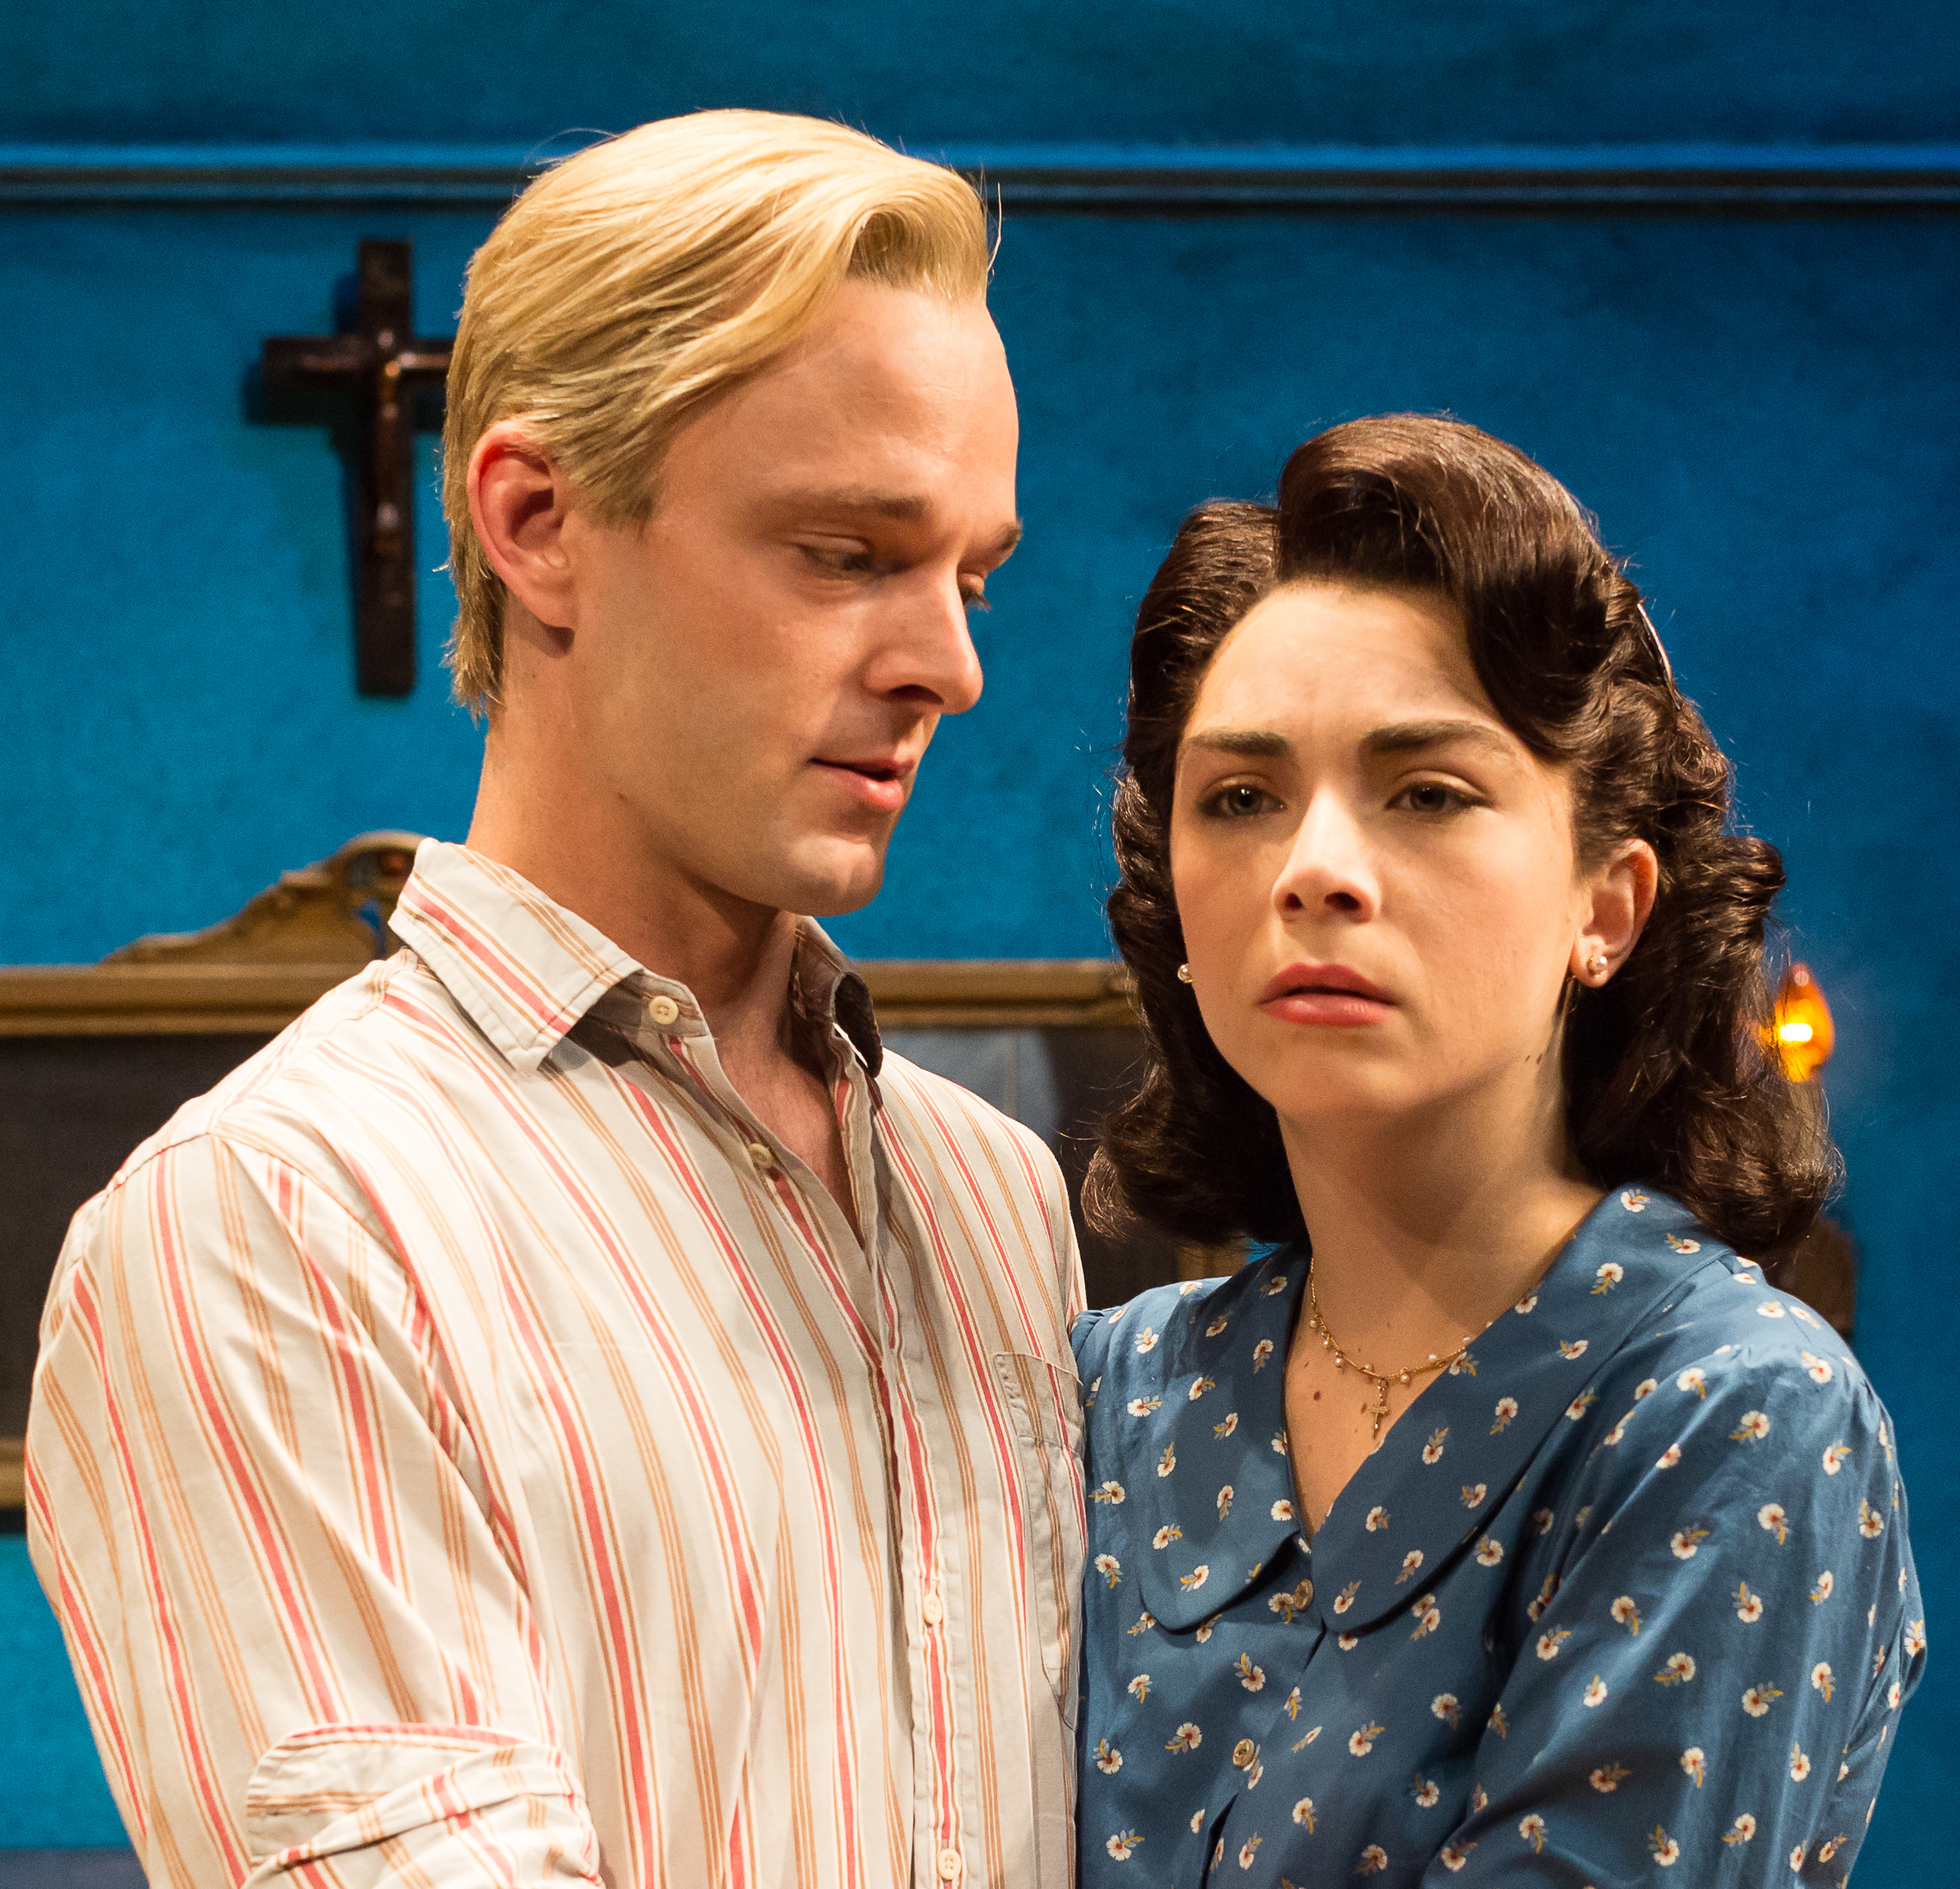 Jay Sullivan As Rodolpho And Cara Ronzetti Catherine In The Alley Theatres Production Of A View From Bridge By Arthur Miller